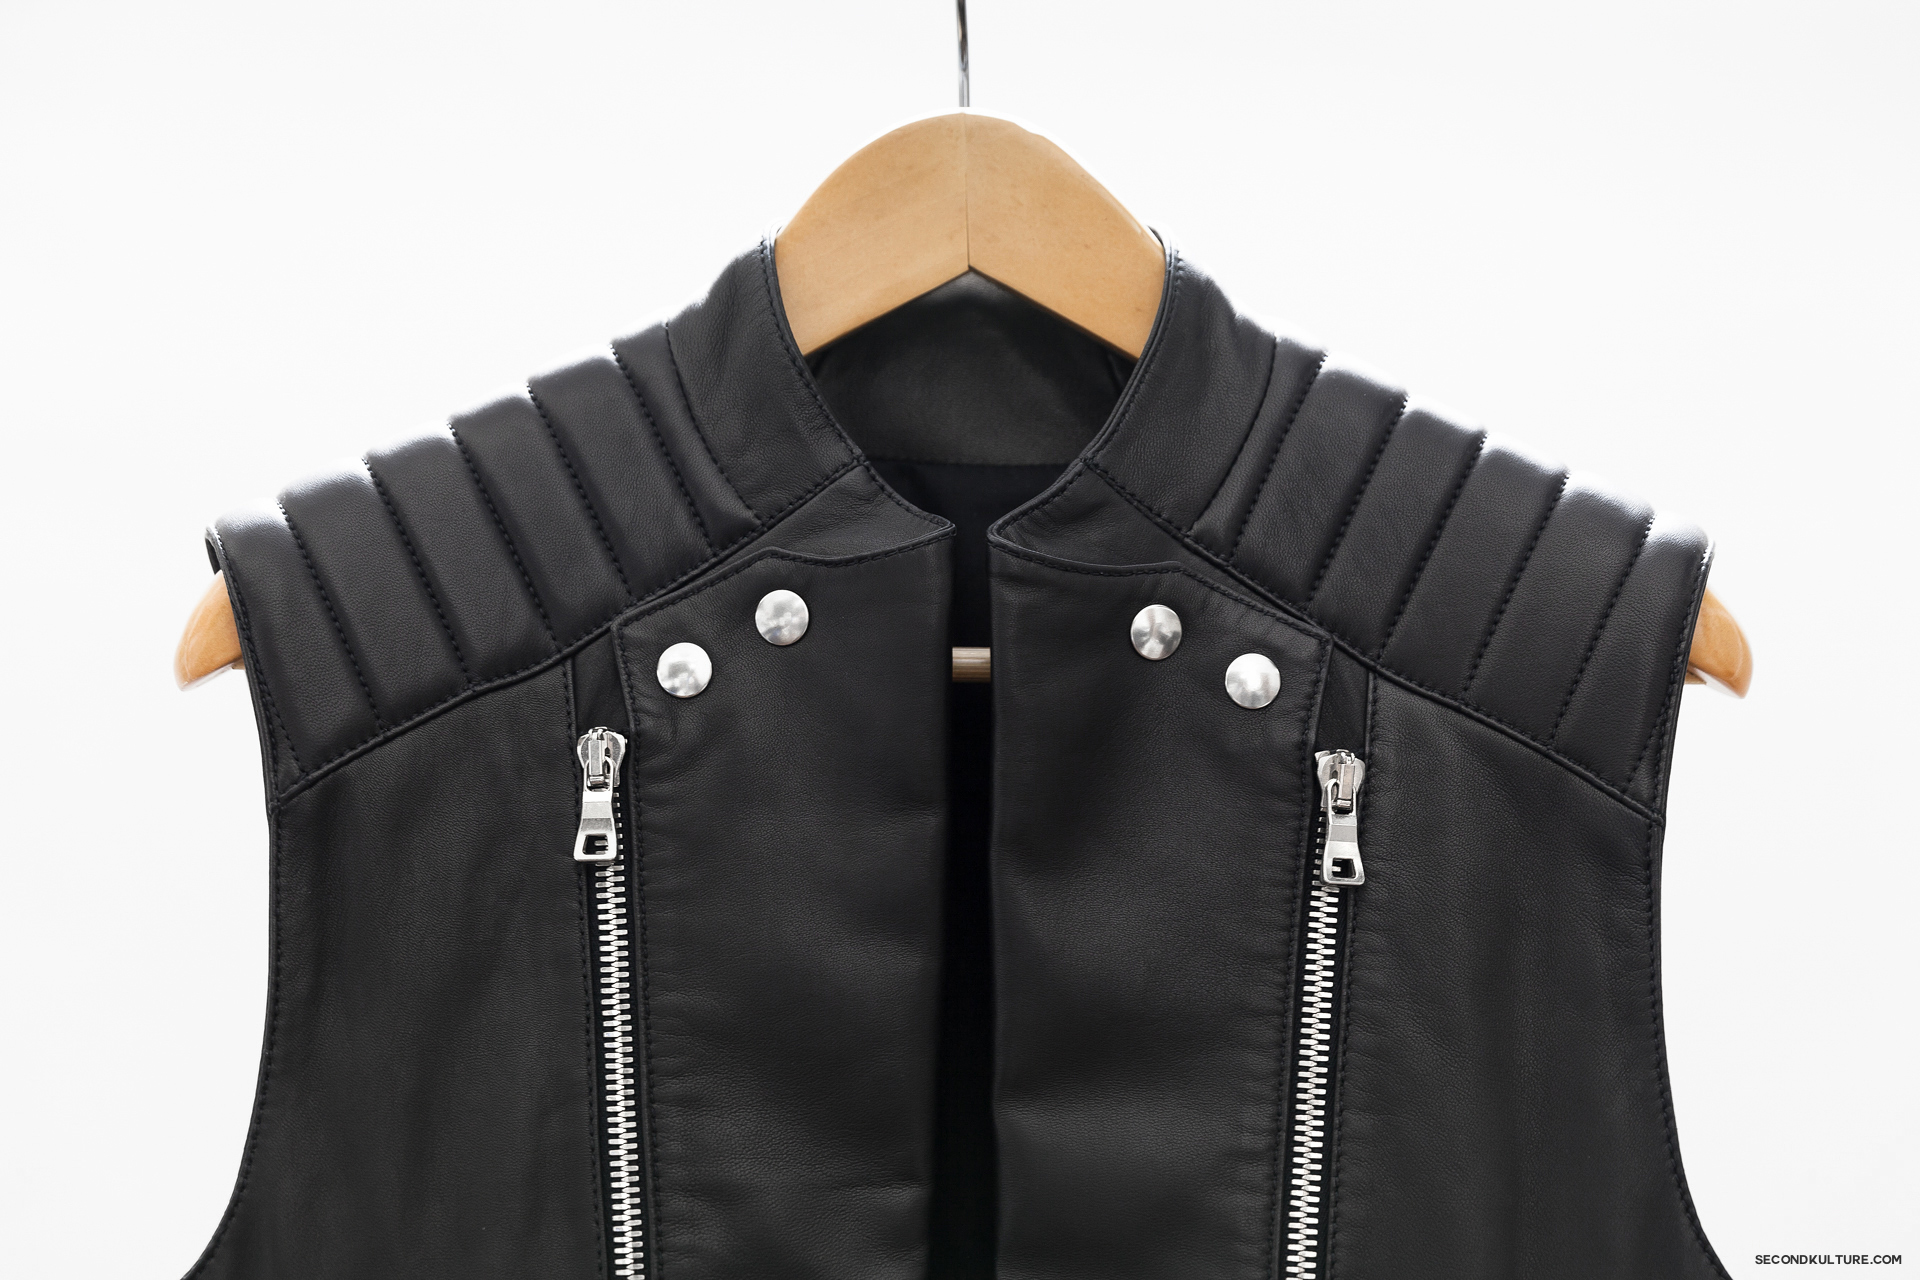 Balmain-Black-Zipped-Biker-Leather-Gilet-Vest-Sleeveless-Jacket-4